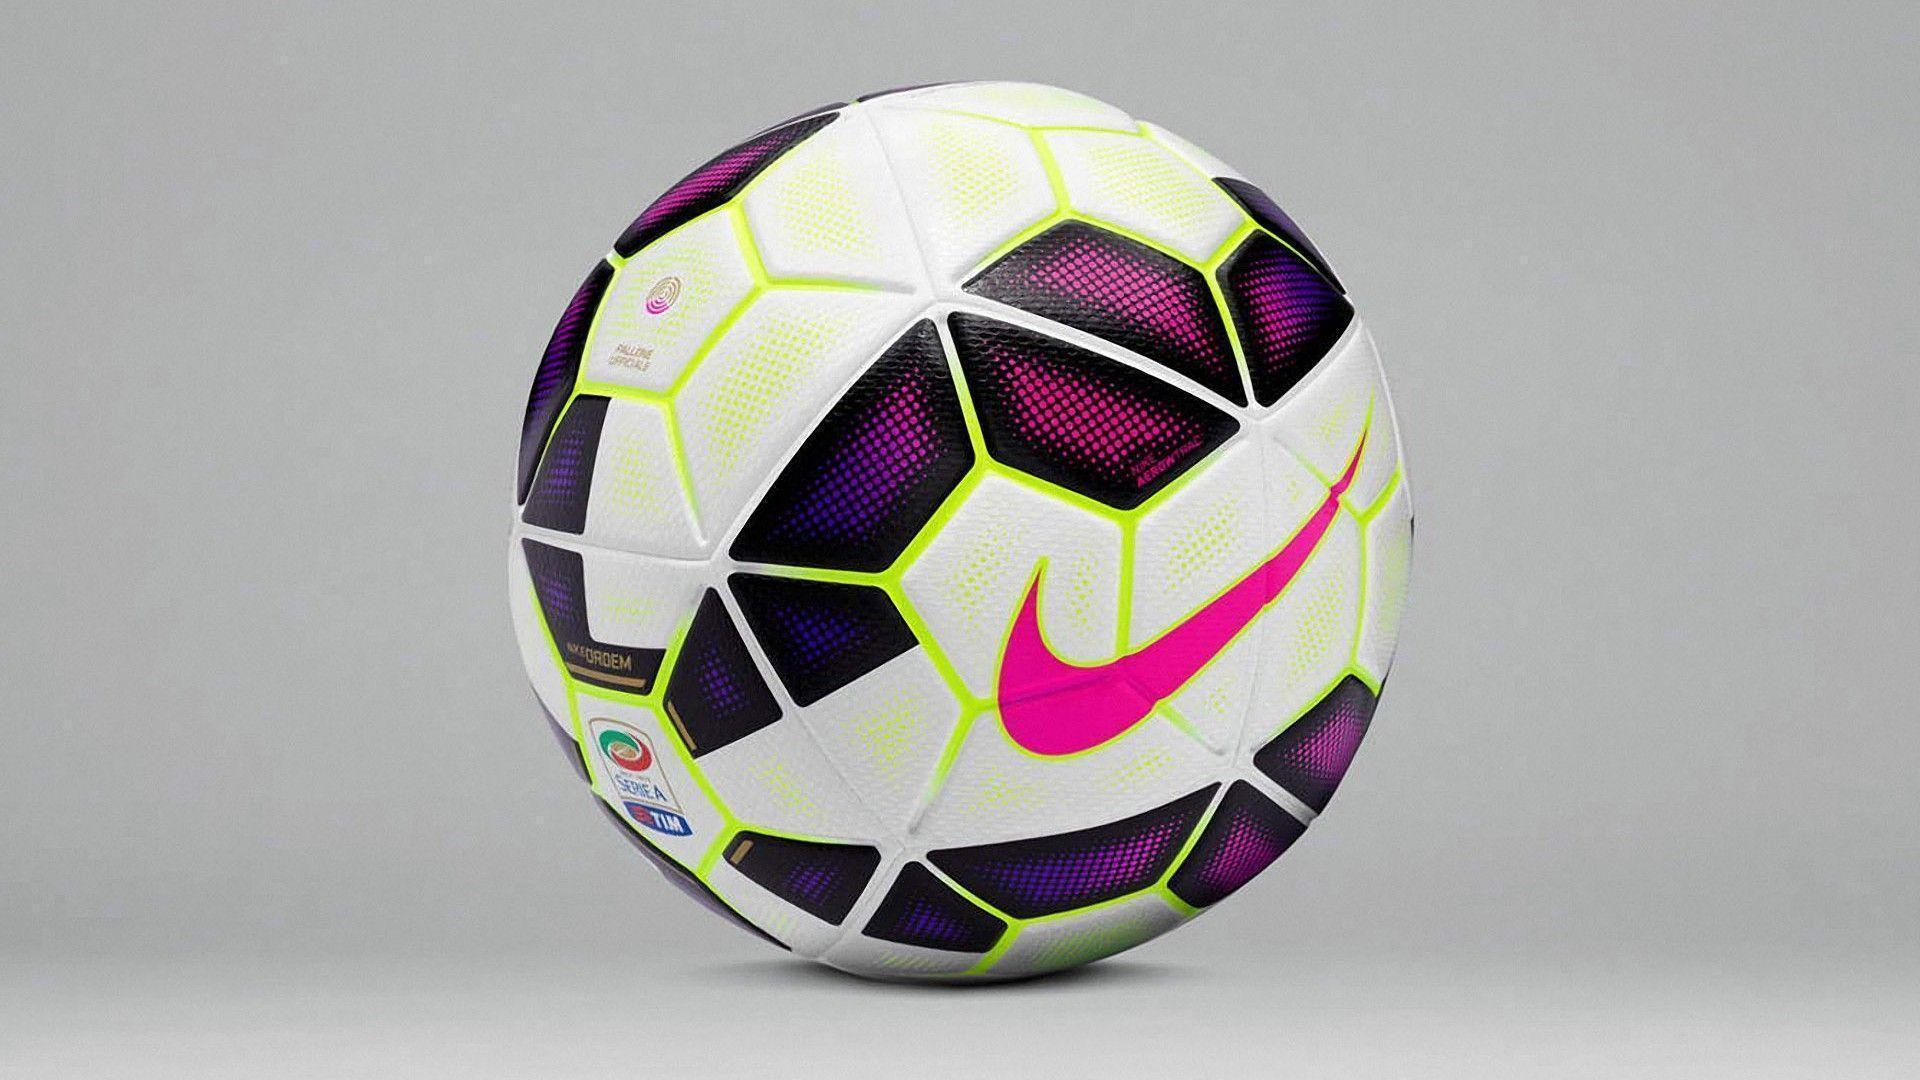 Nike Ordem 2014 2015 Serie A Ball Wallpaper Wide or HD